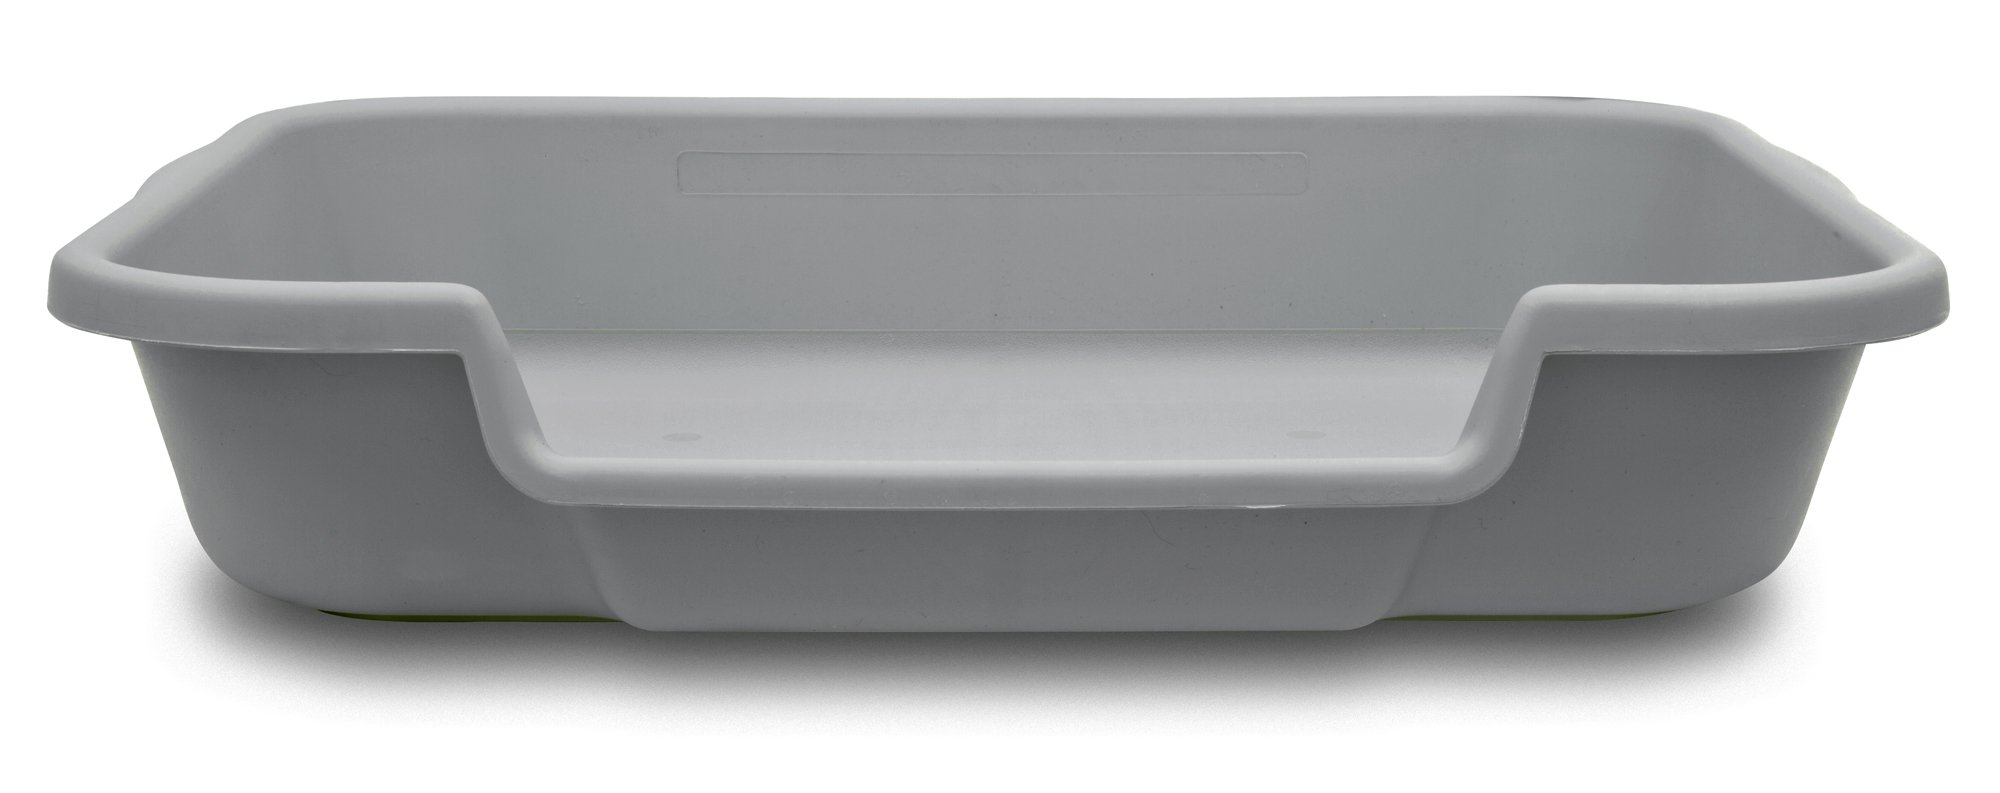 PuppyGoHere Dog Litter Box Recycled Gray Color: 24''x20''x5'' Recycled Gray Colored Pans May Vary in Color. Marks May BE Present. See More Information in Description USA Made by PuppyGoHere